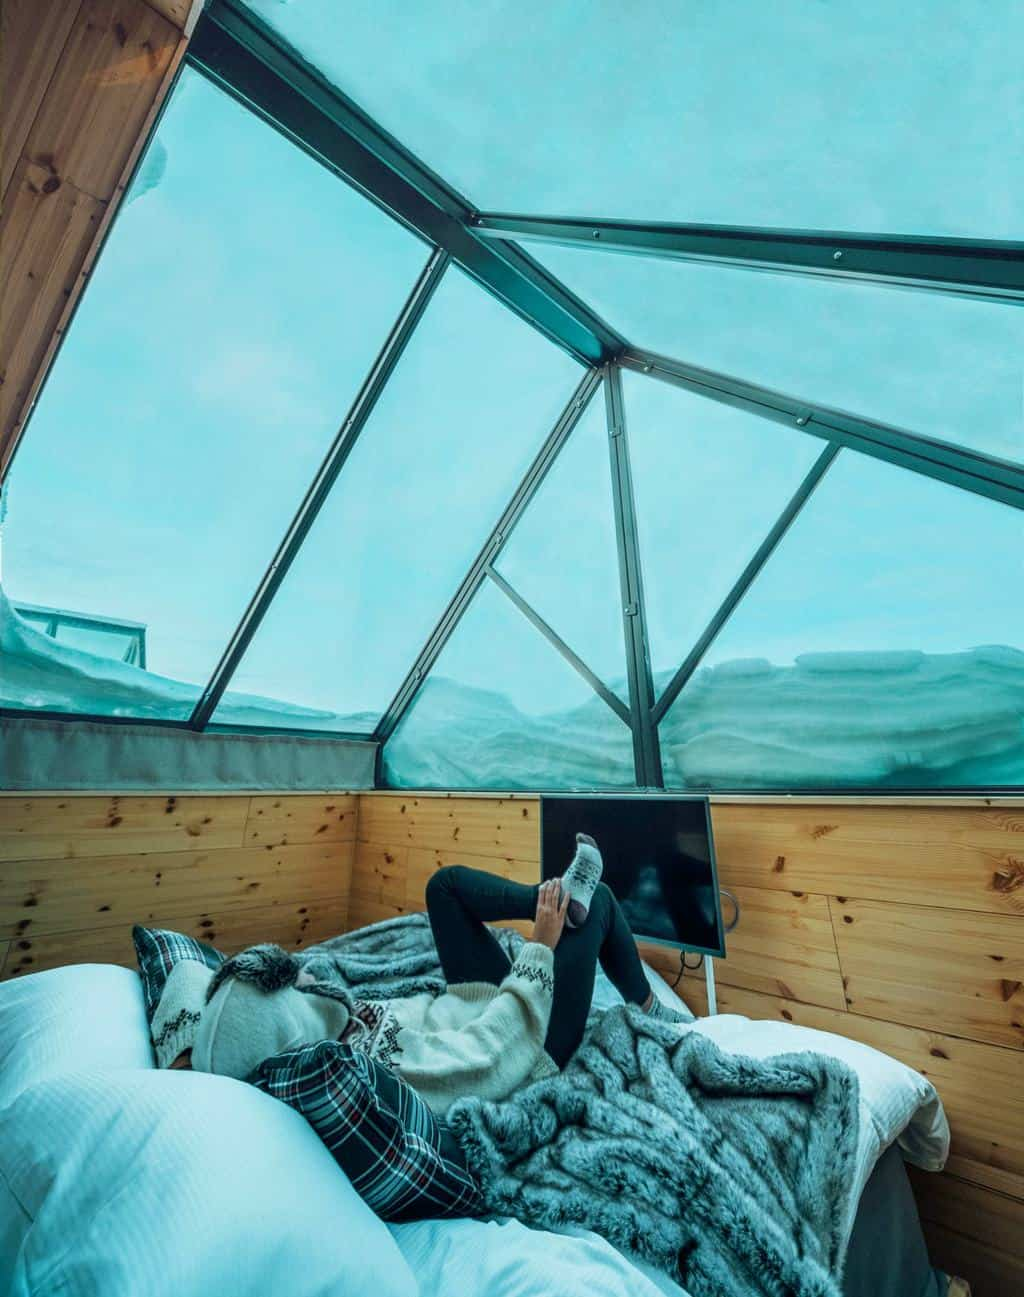 A woman lying on a bed looking up at the glass roofed cabin Finnish Lapland, Lapland destinations, Lapland Finland, Inghams